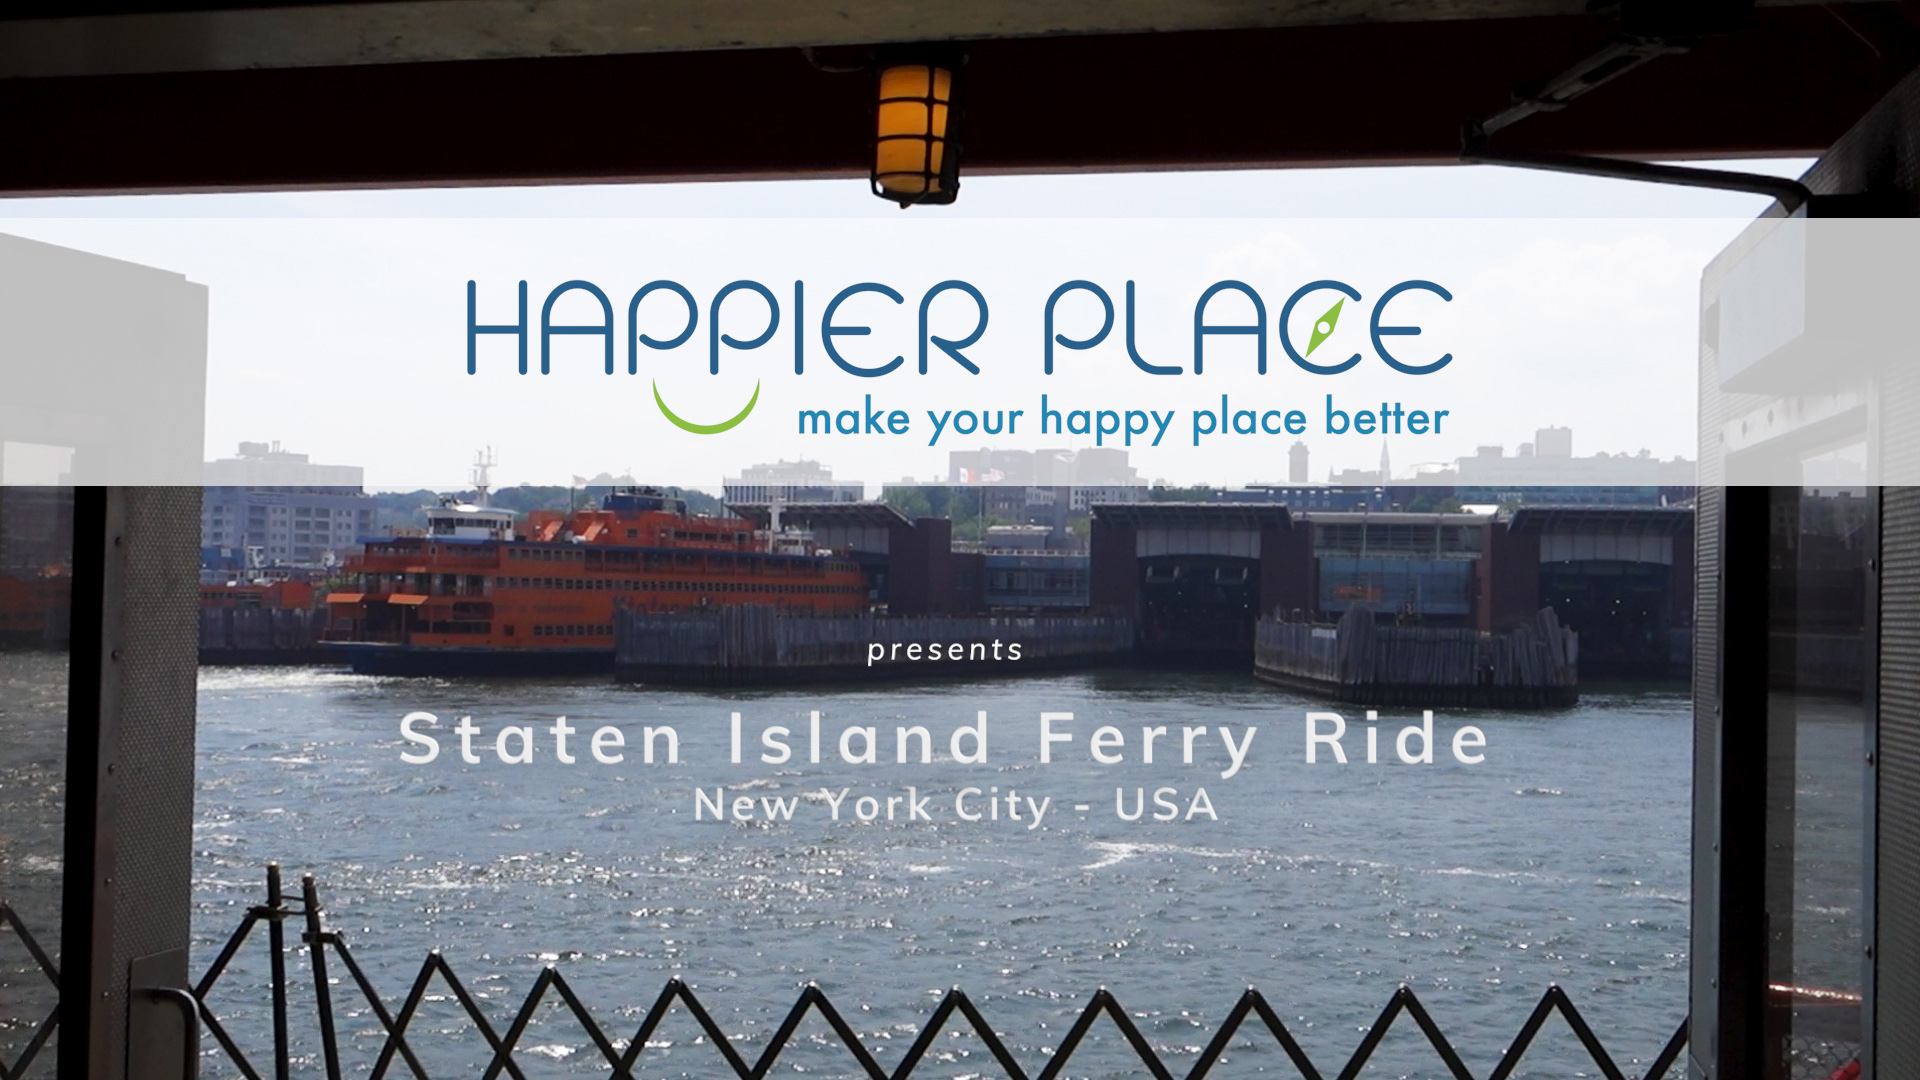 Staten Island Ferry Ride view of Staten Island - Happier Place